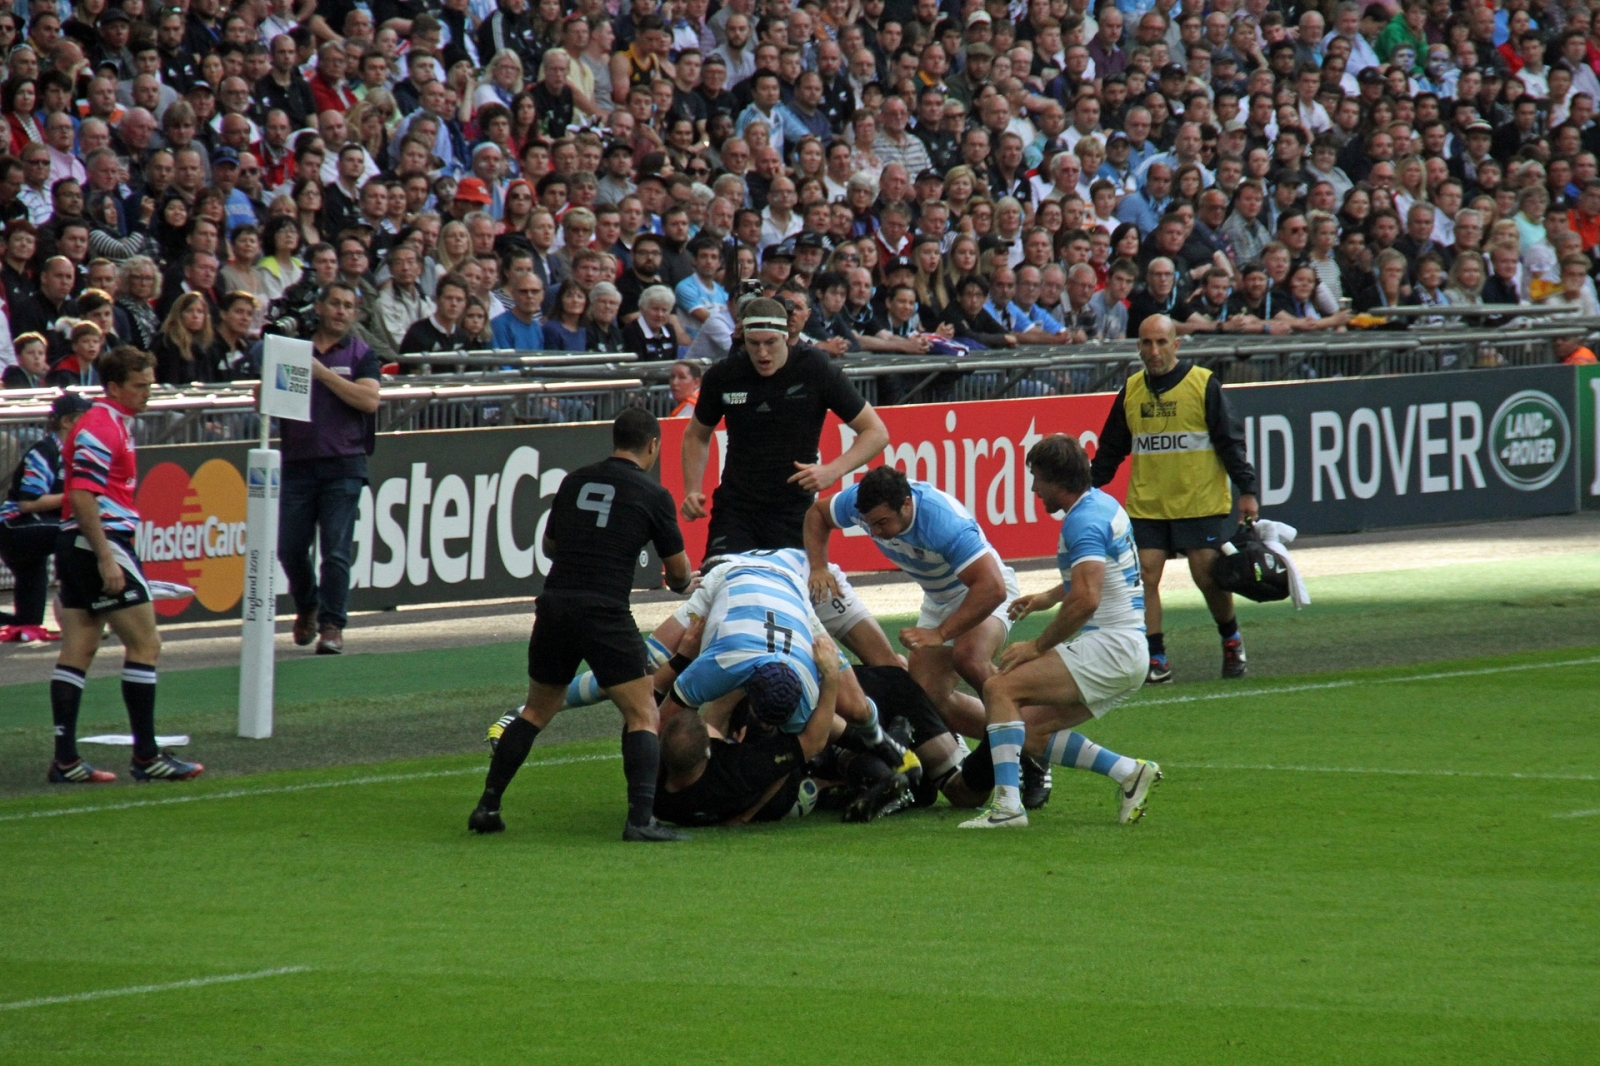 Rugby1210840_1920